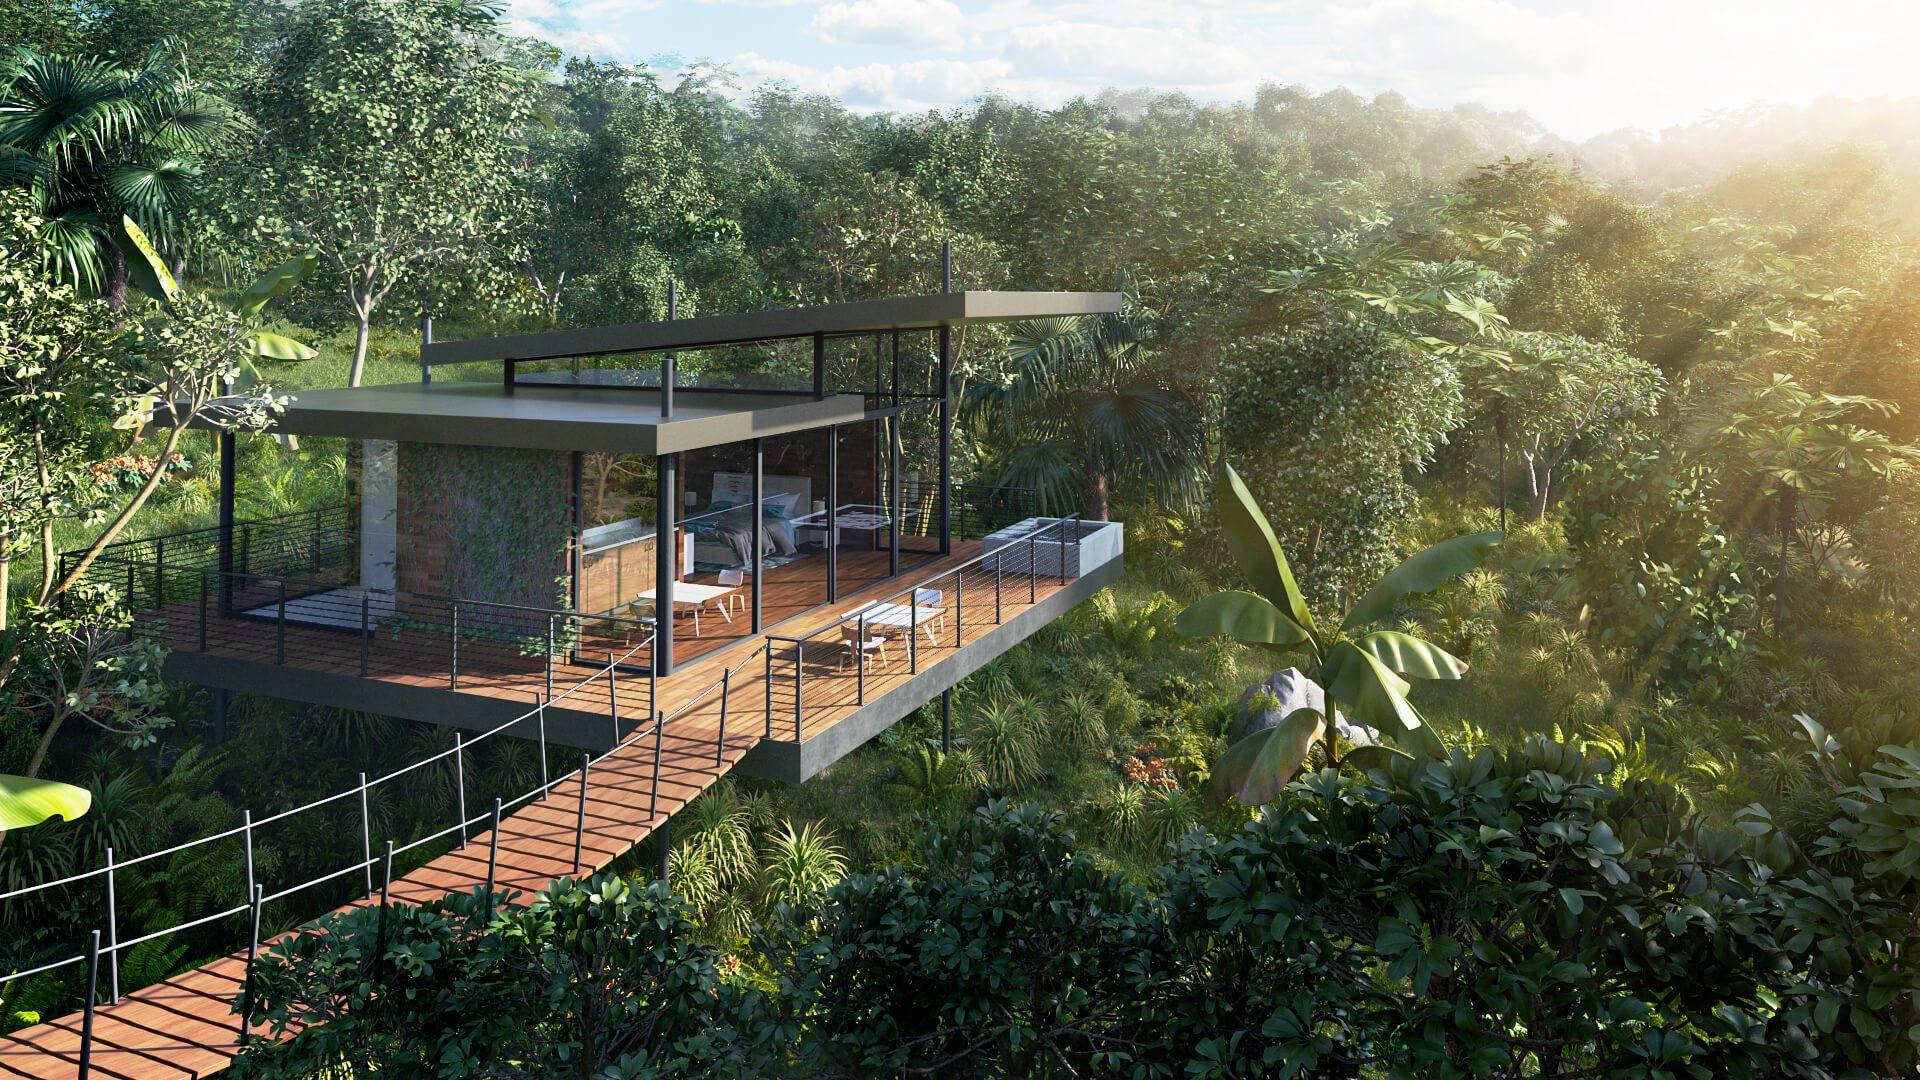 3D Commercial Rendering Of A Tropical Hotel